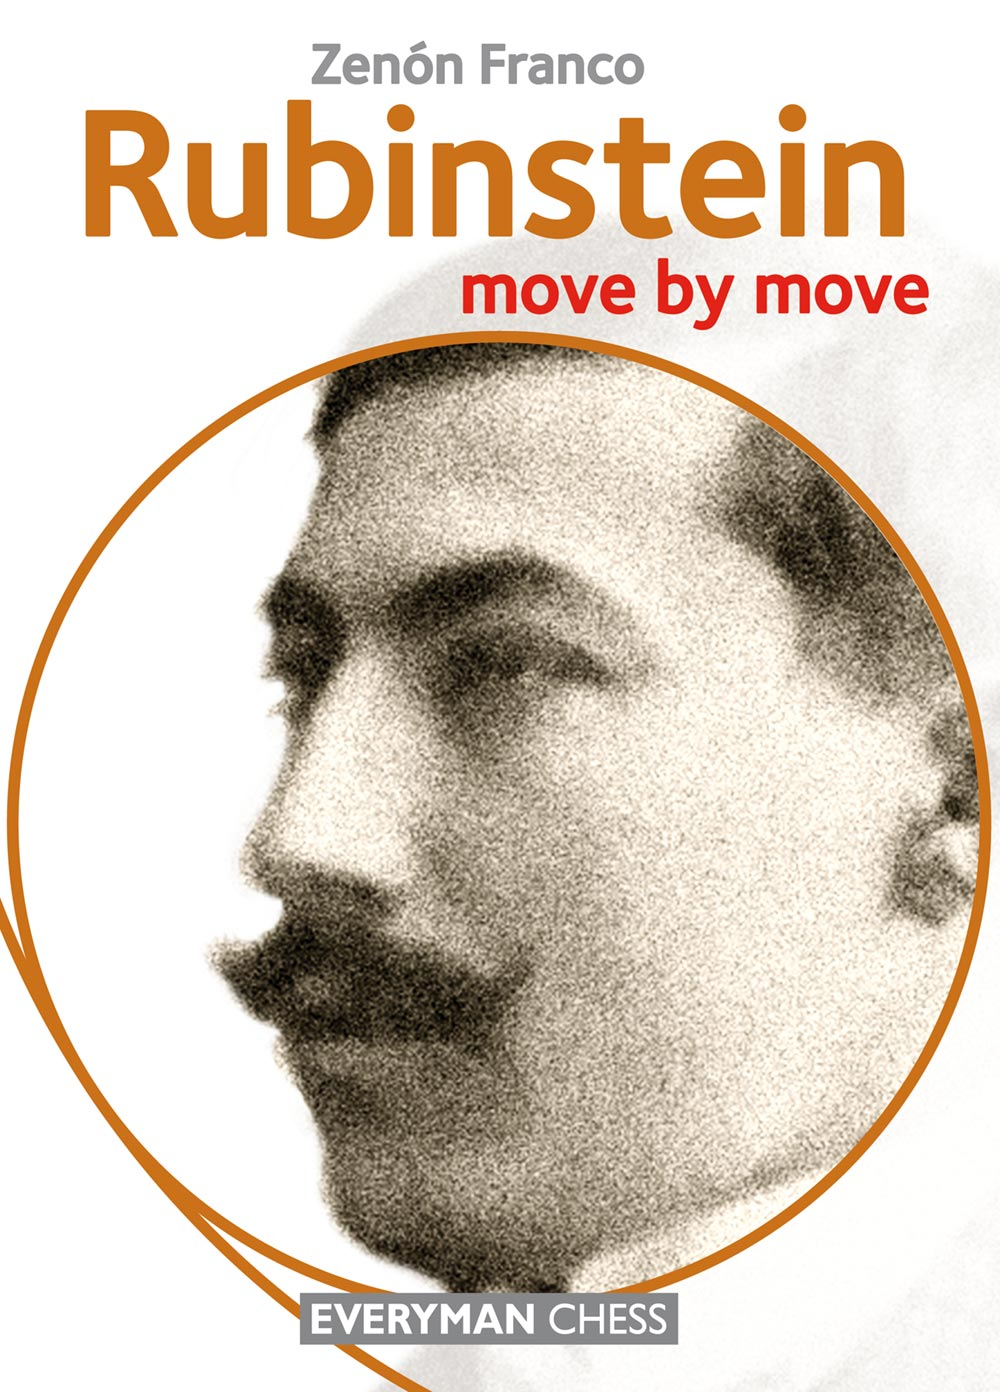 Rubinstein: move by move front cover